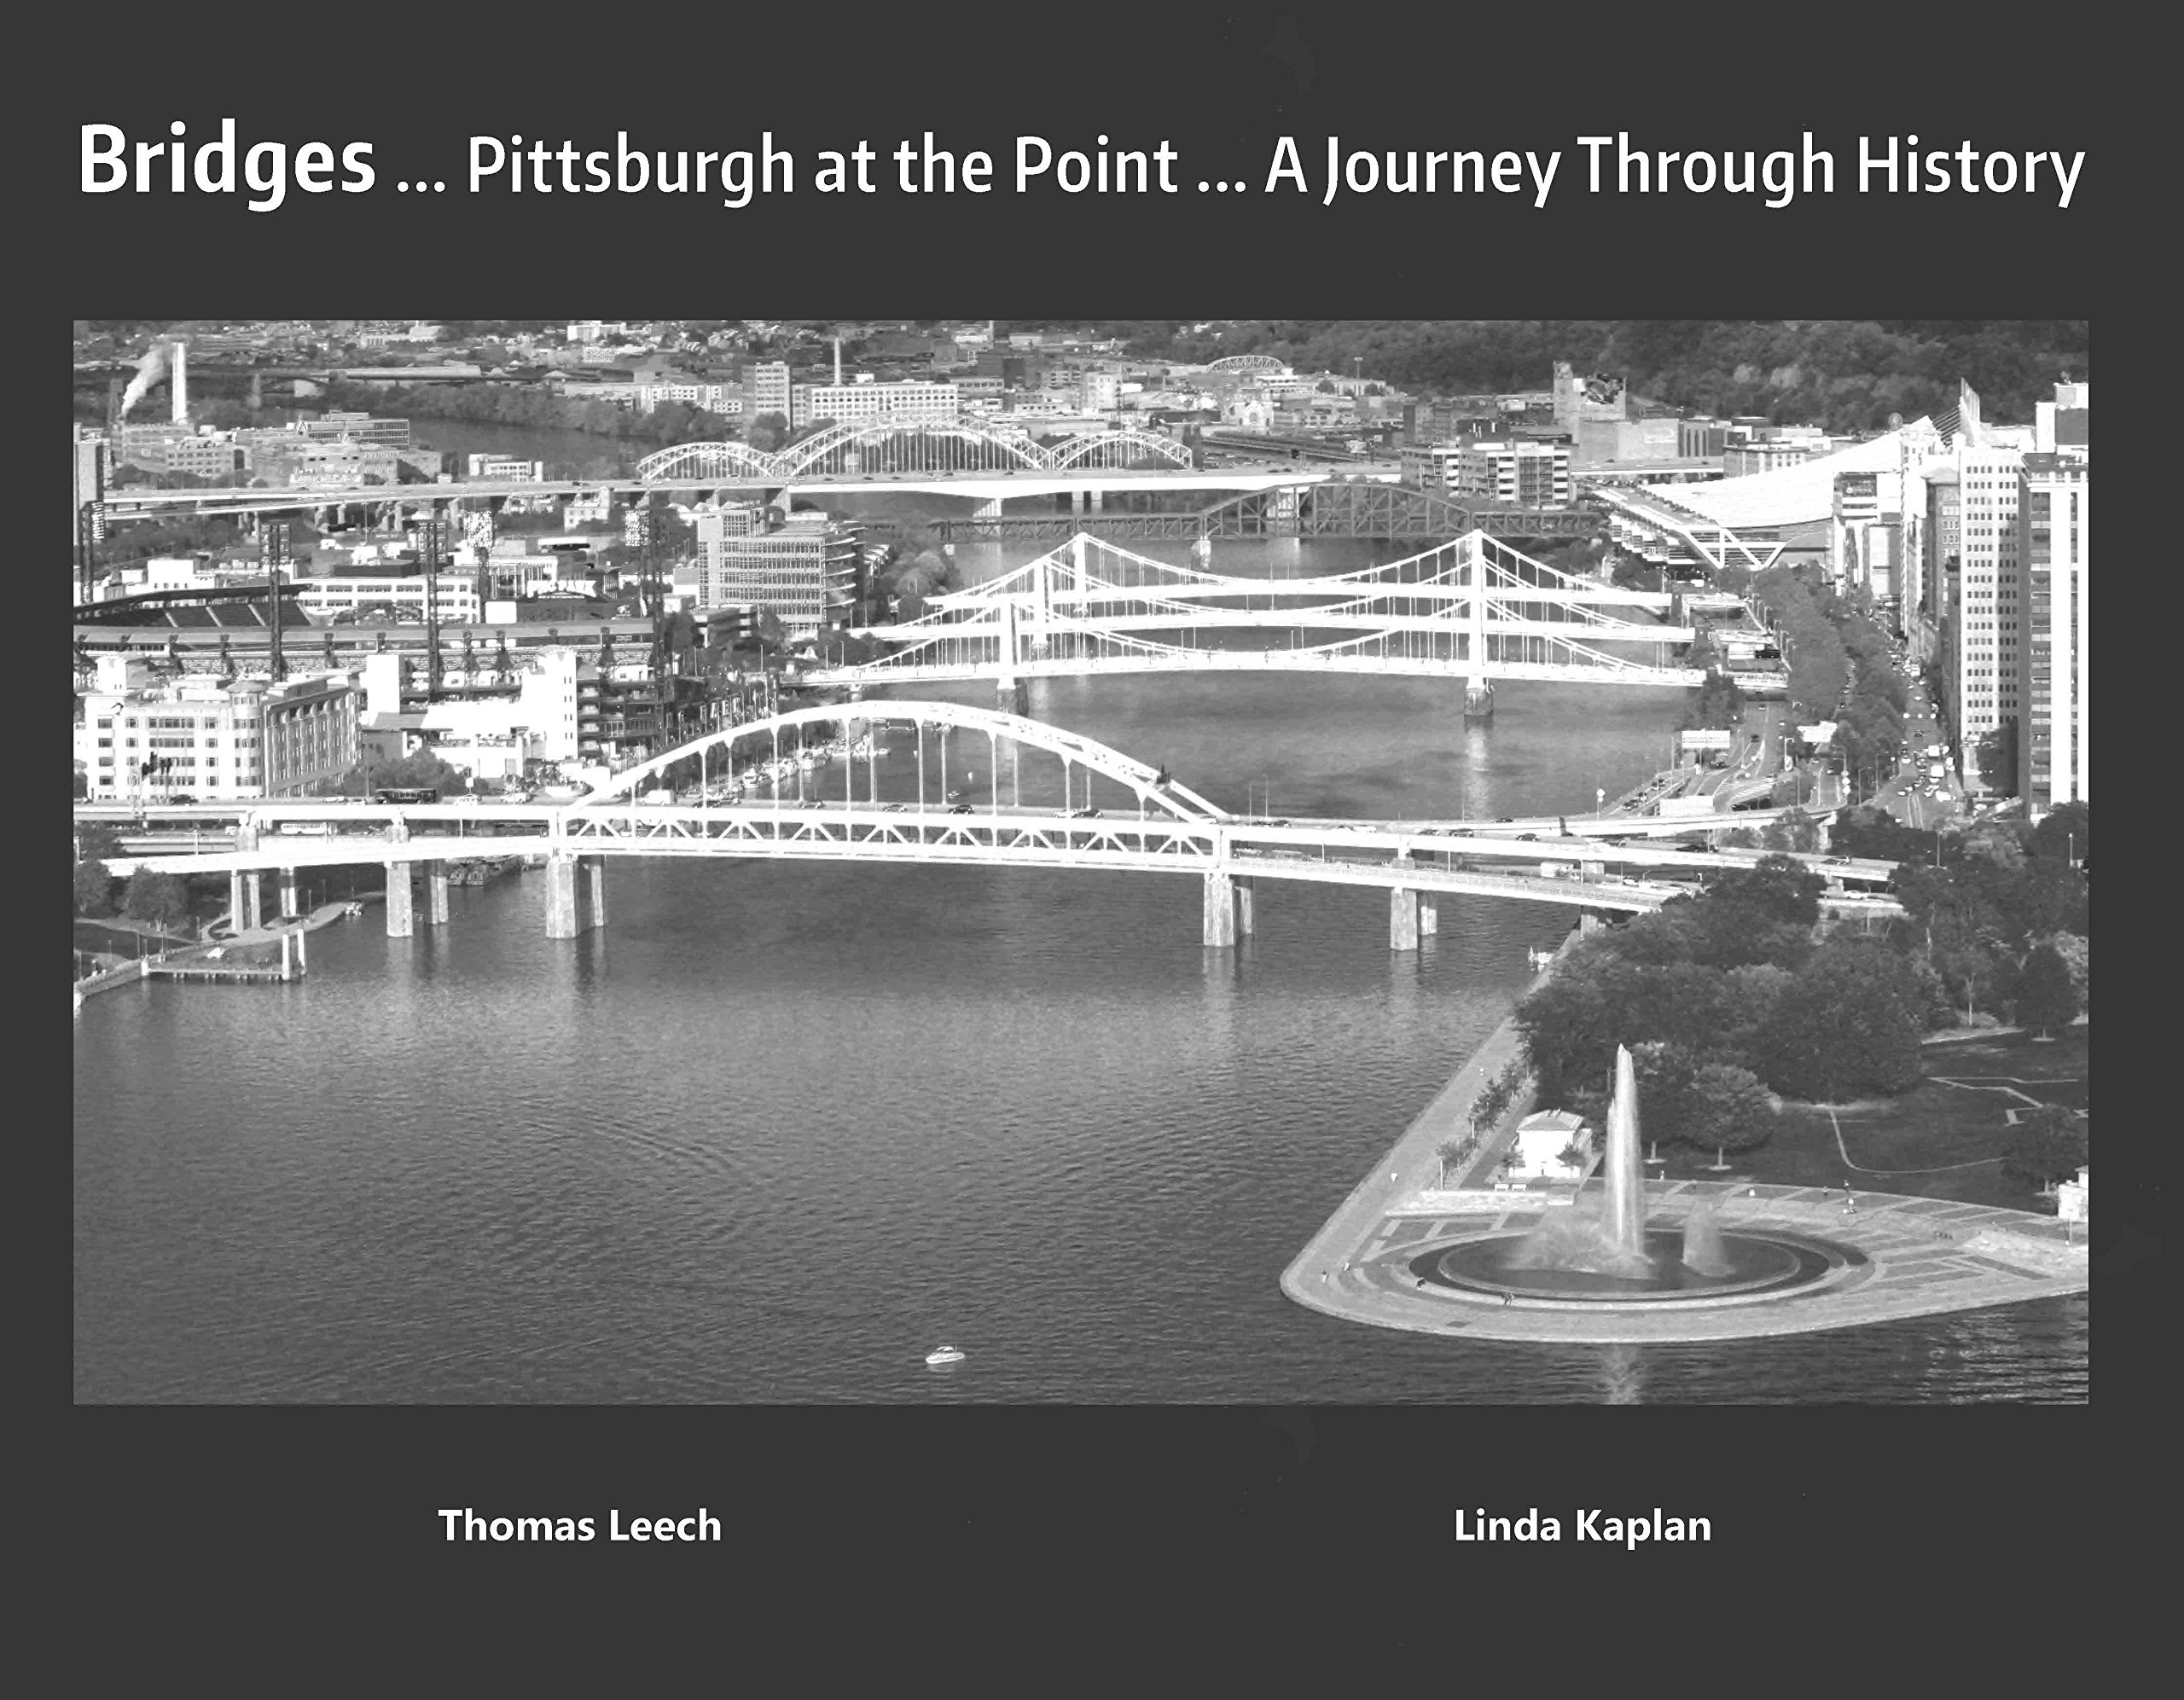 Bridges Pittsburgh at the Point a Journey Through History